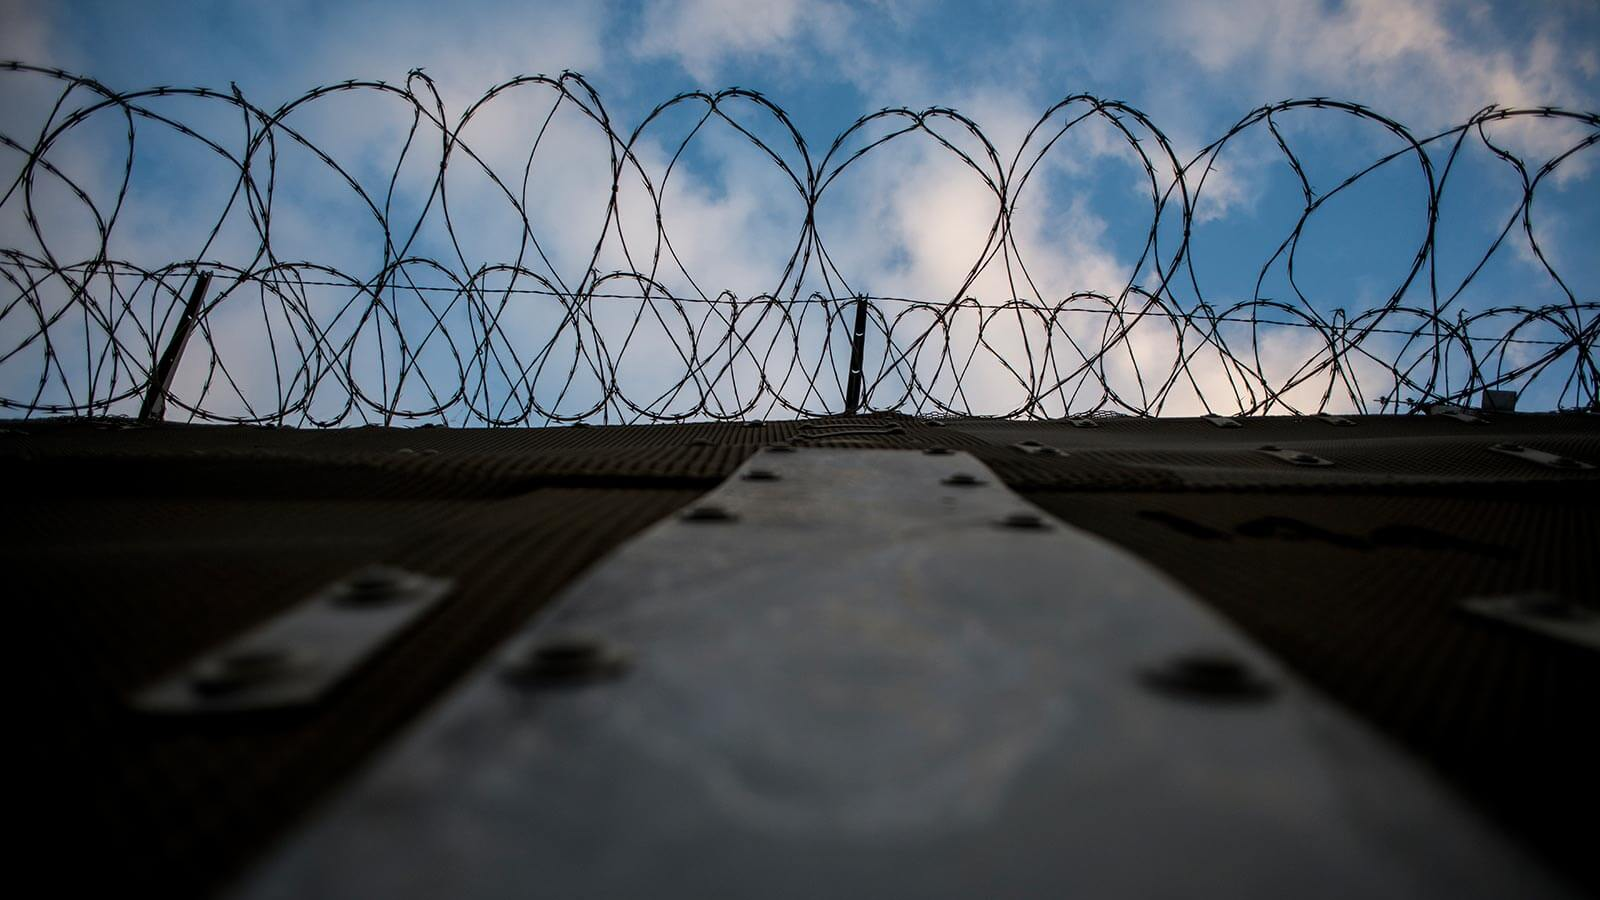 America's Wall, close-up of barbed wire fencing